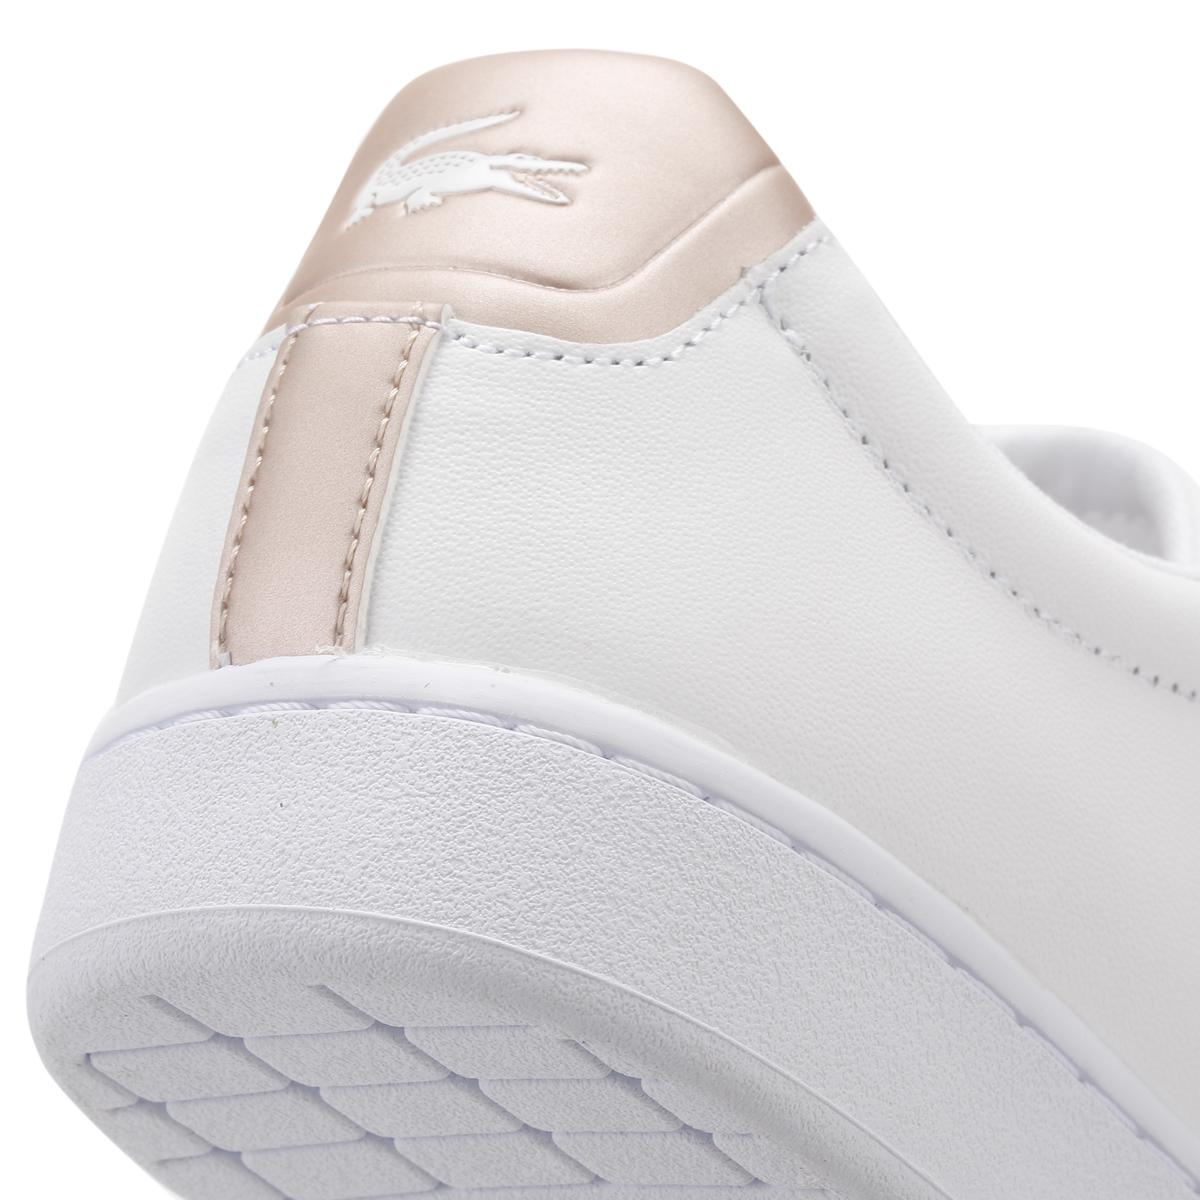 2a754afd2 Lyst - Lacoste Womens White light Pink Carnaby Evo 217 2 Spw ...